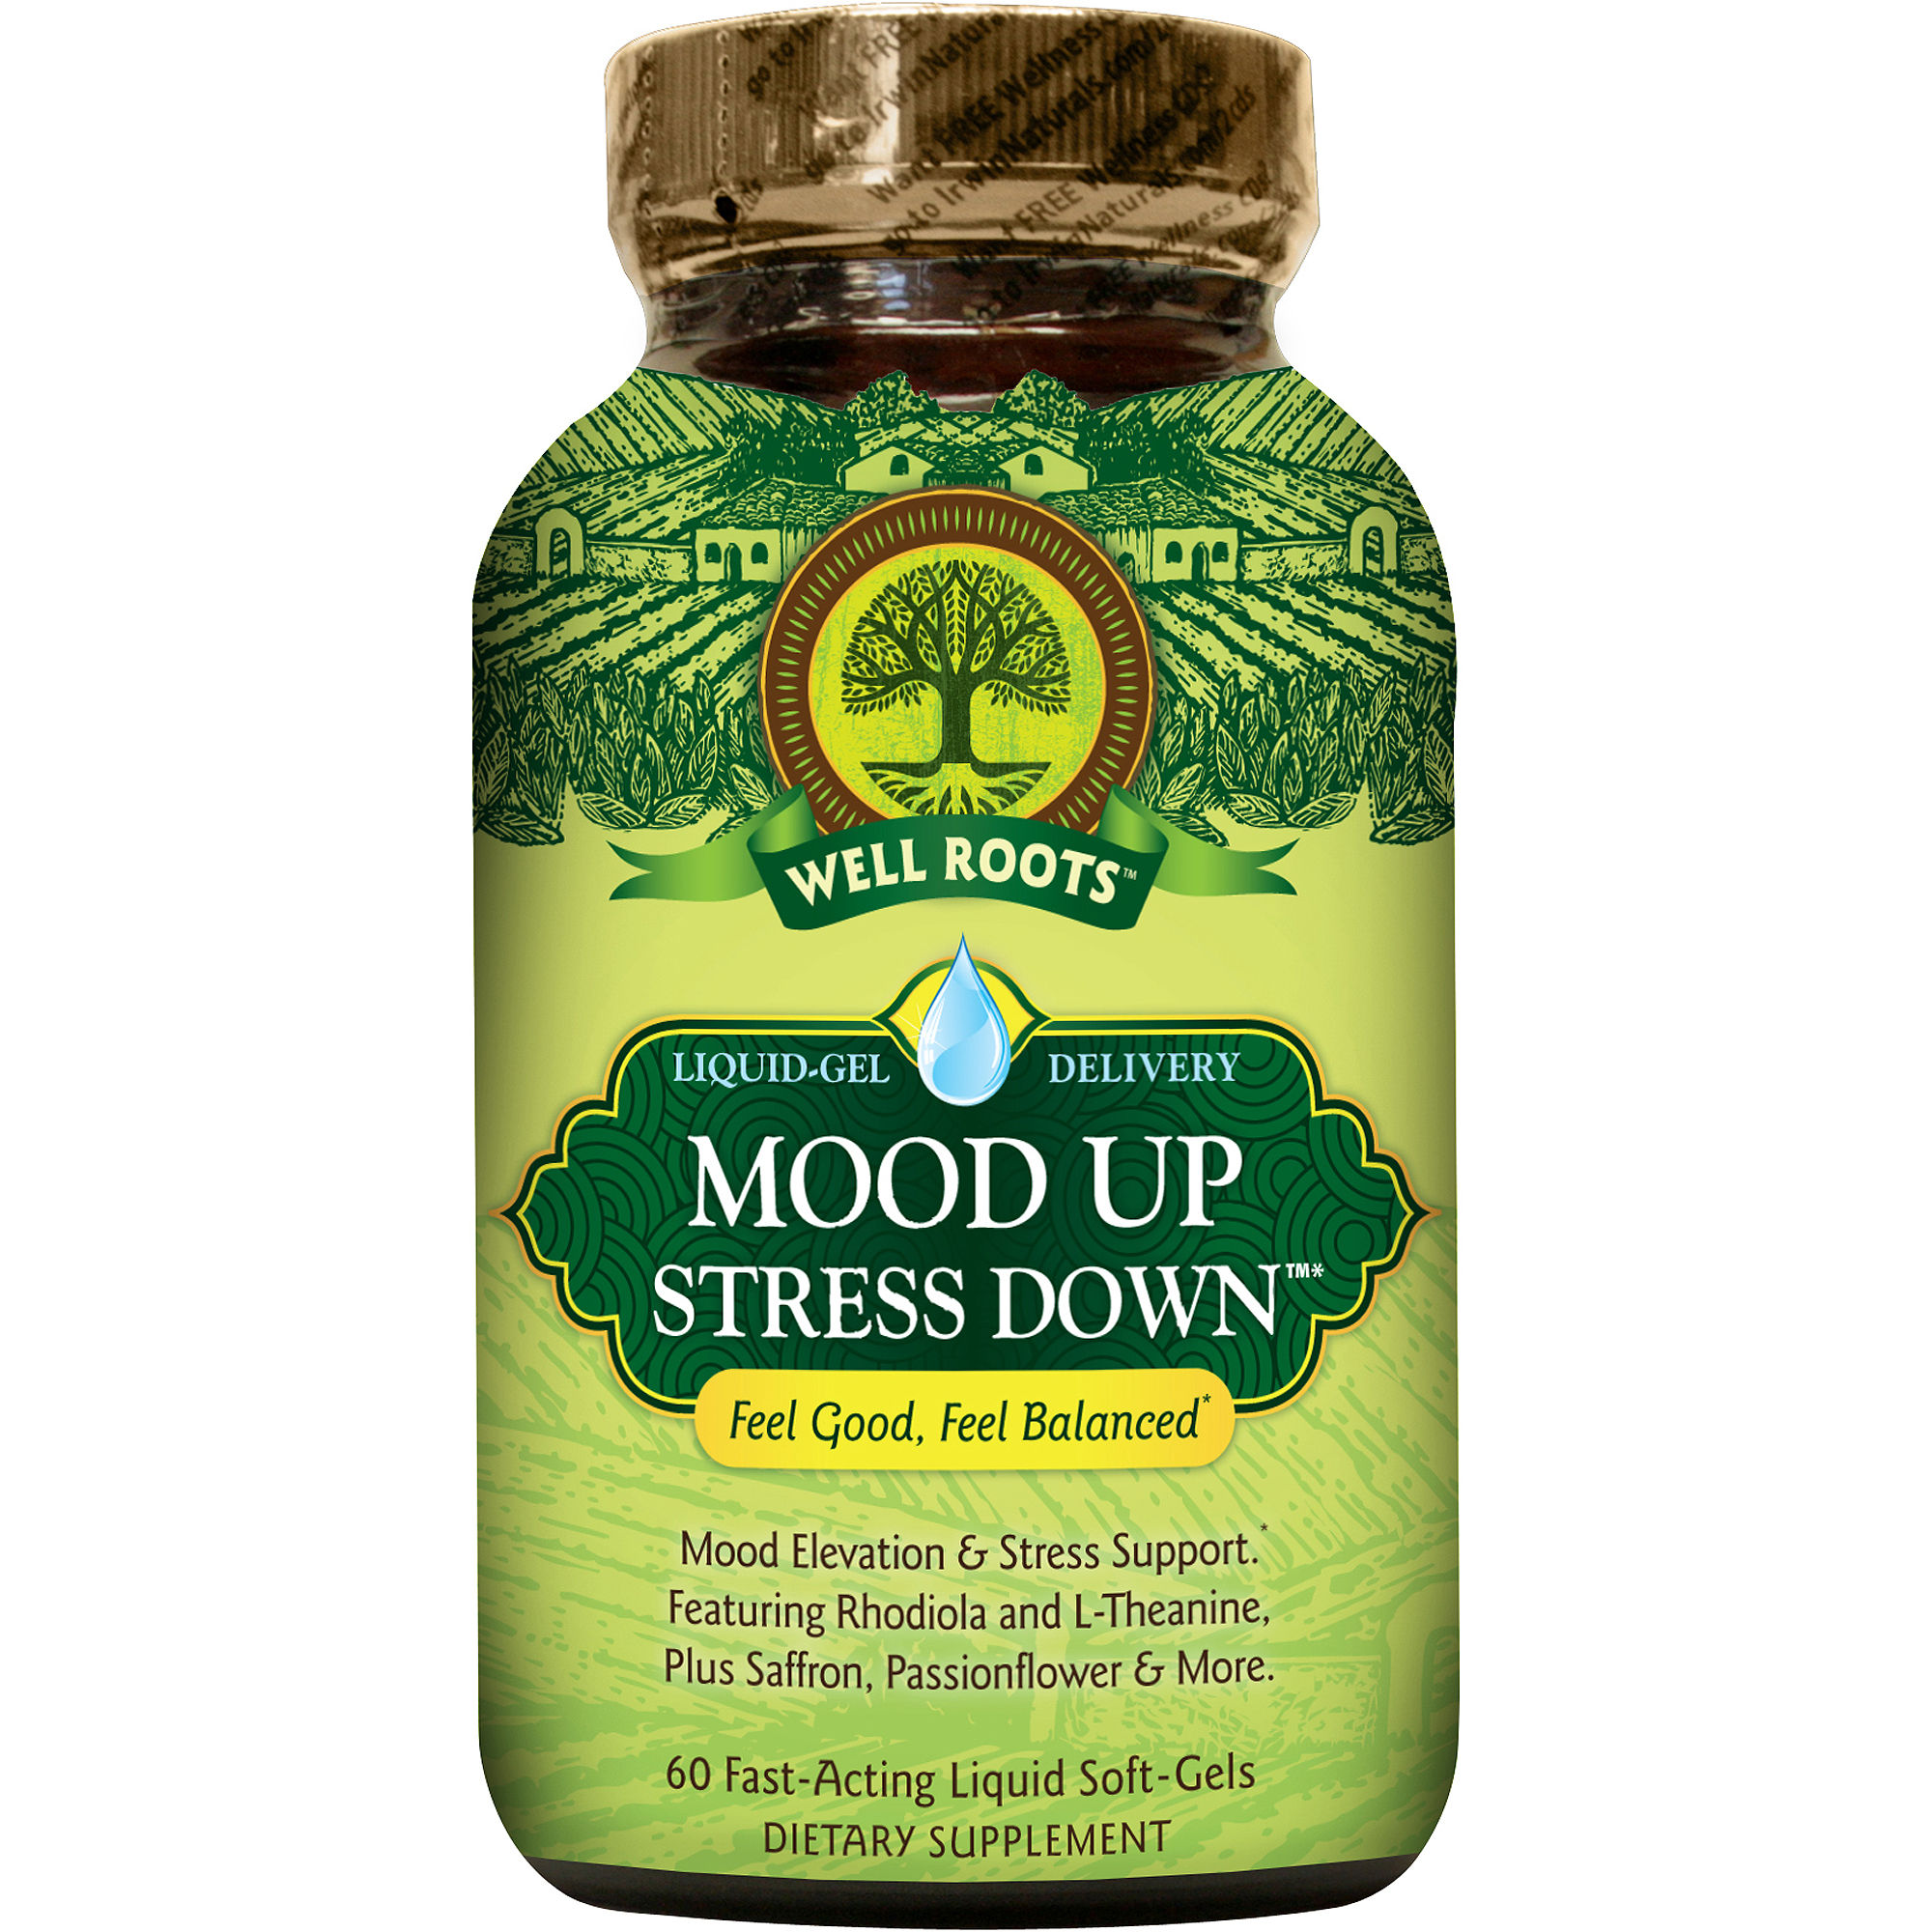 Well Roots Mood Up Stress Down Dietary Supplement Fast-Acting Liquid Soft-Gels, 60 count